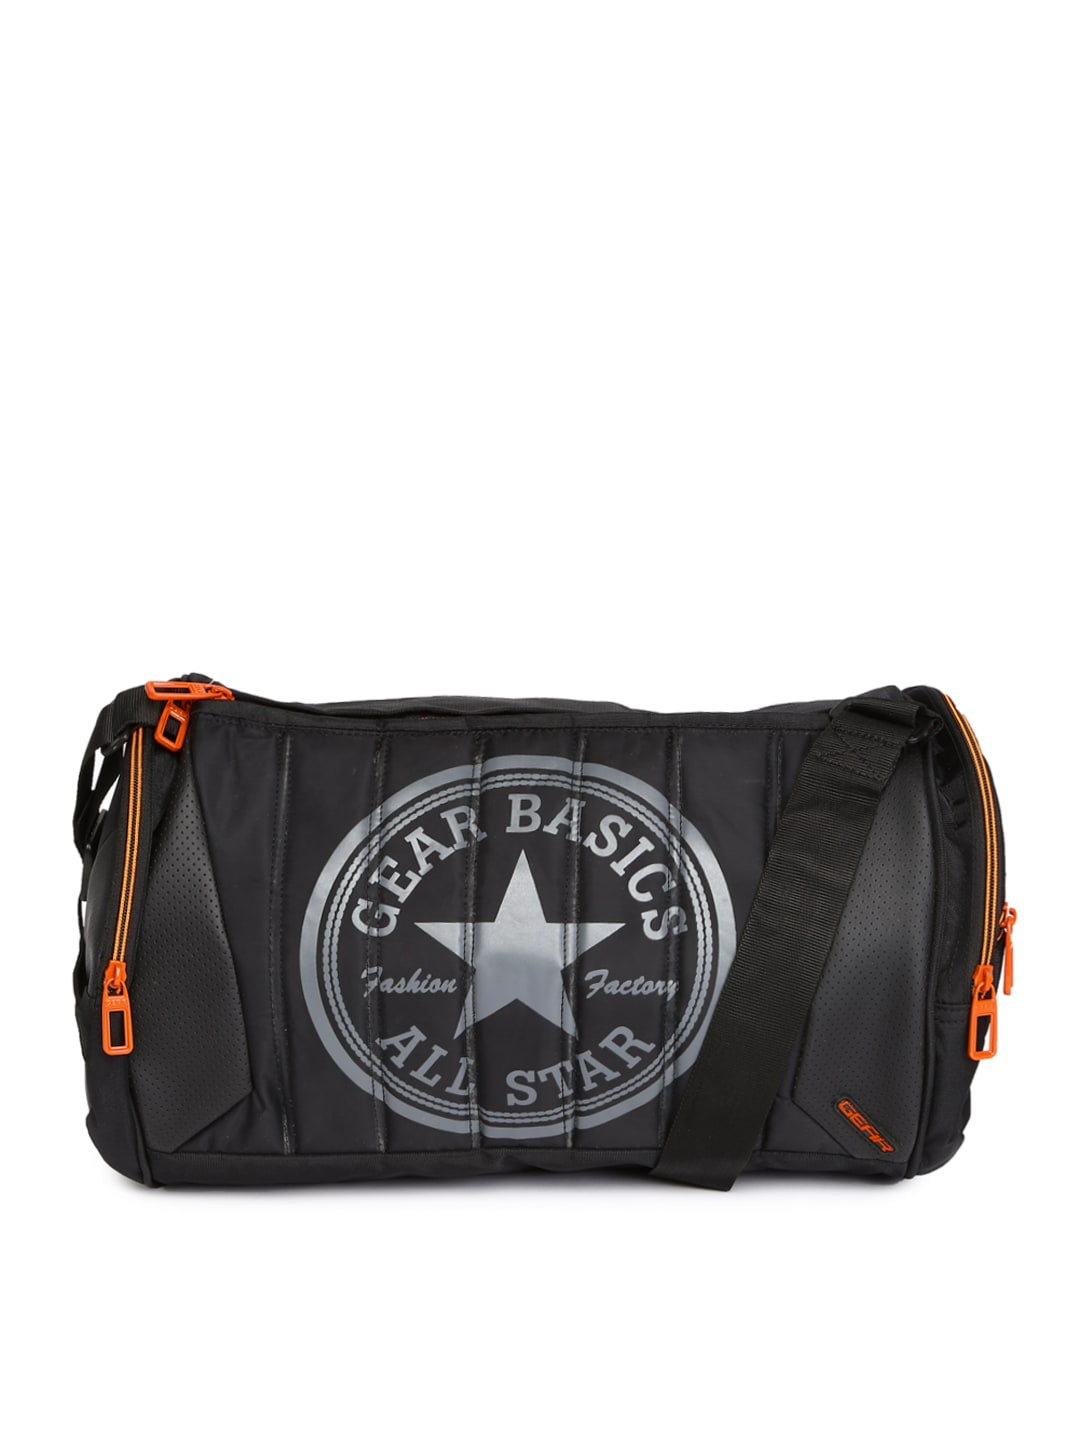 customizable screen-printed and. Olympia 22-inch Carry-on 8-pocket Rolling Upright Duffel Bag